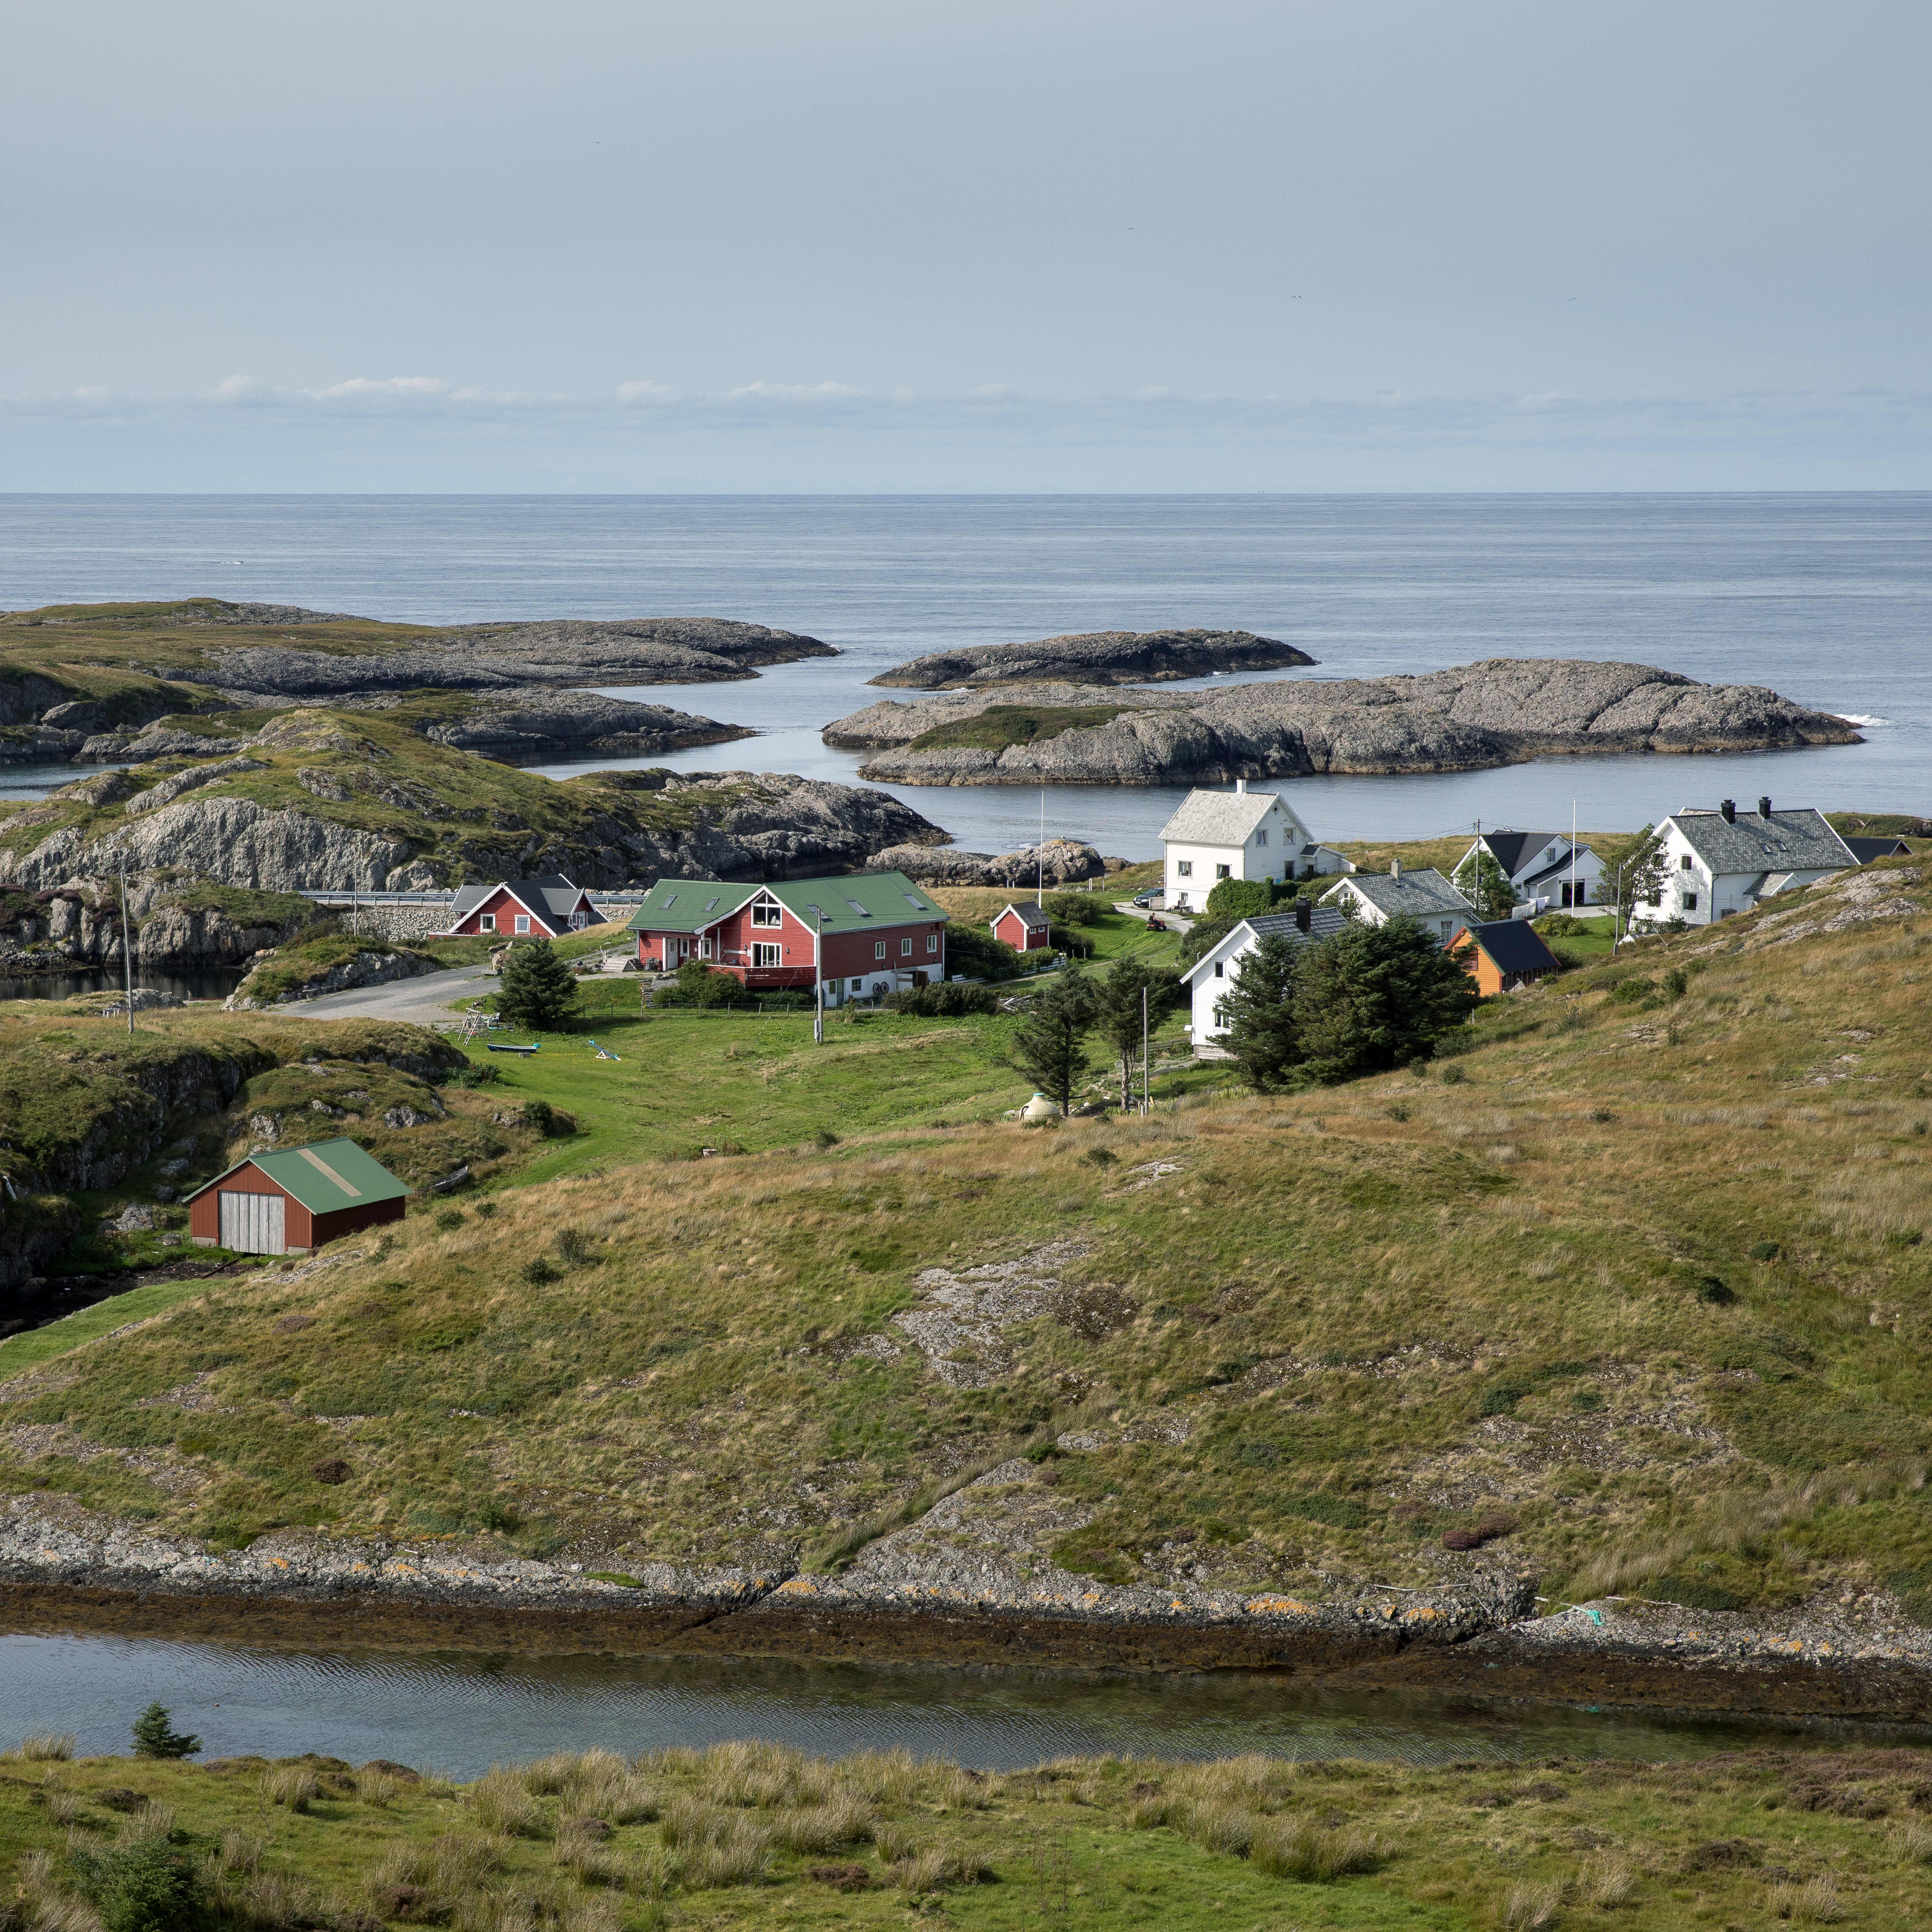 A photo of Bulandet with some private red, white and yellow homes located between small islands and inlets.